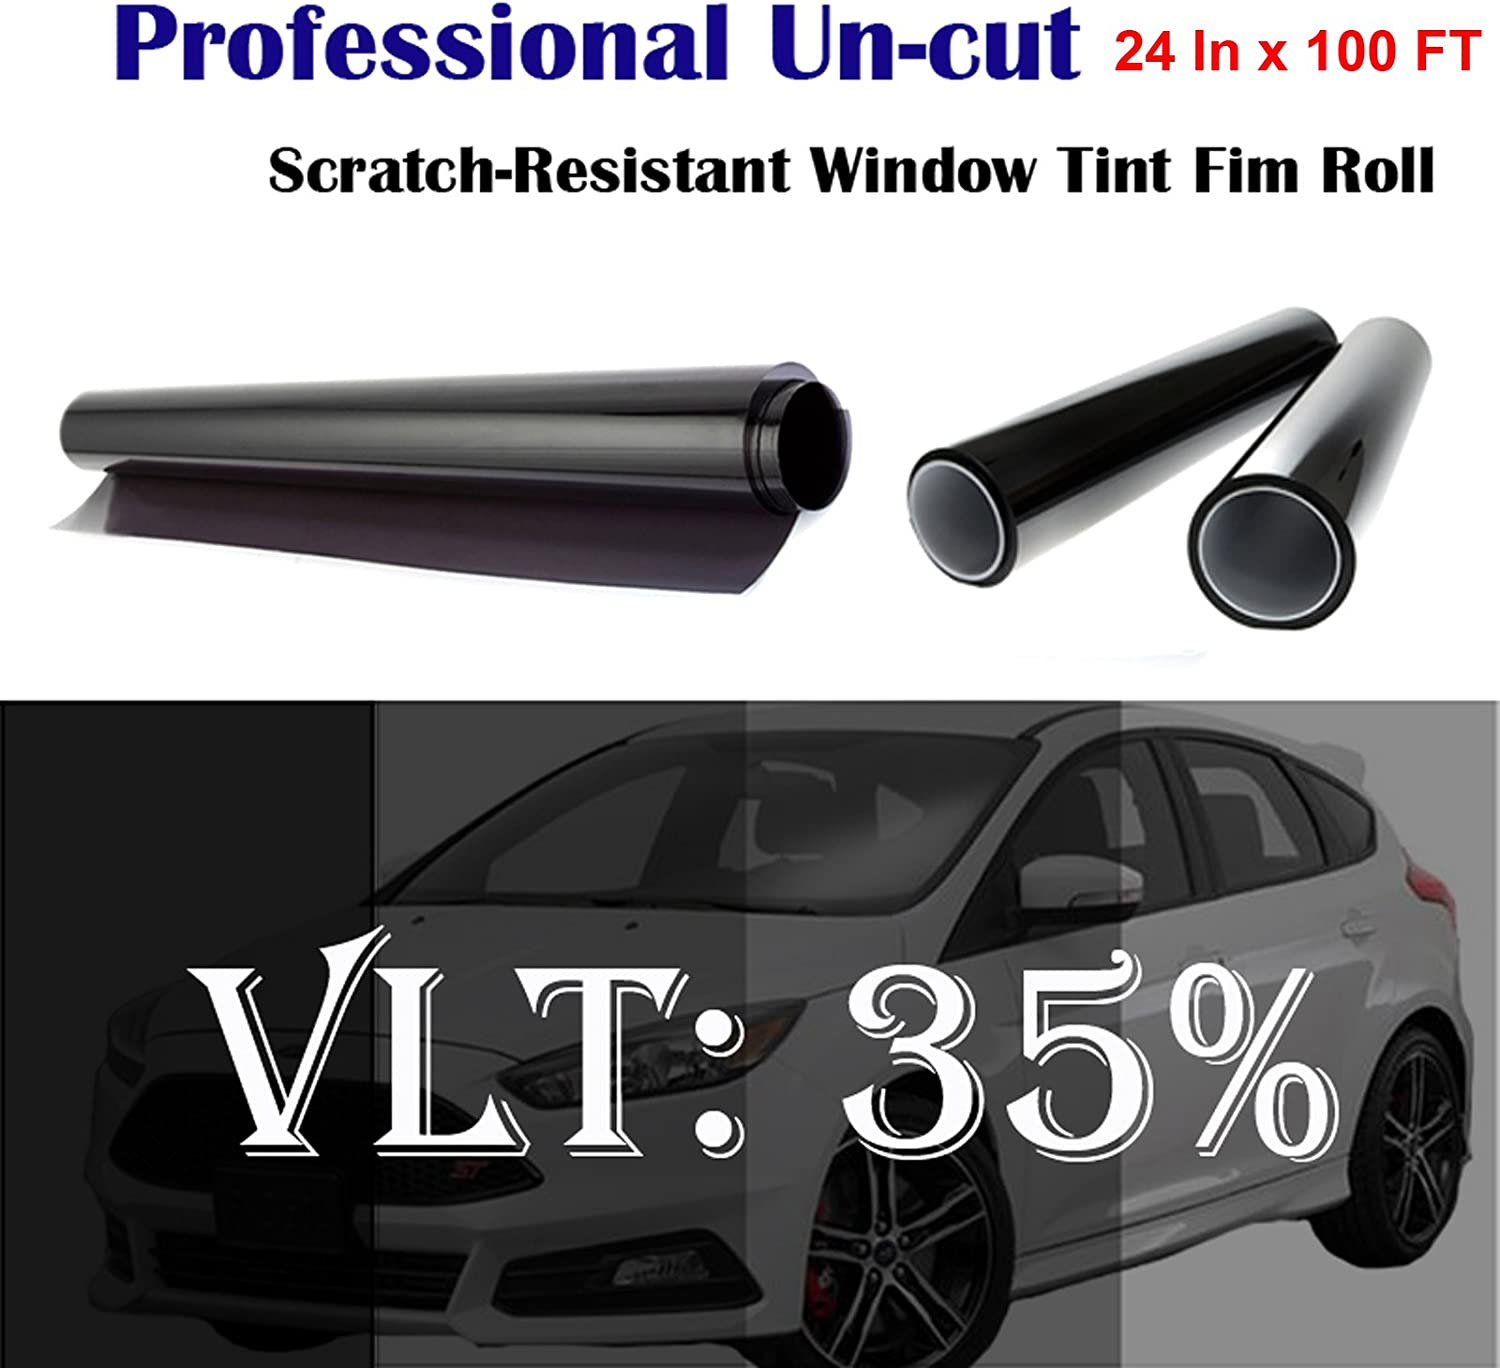 """Mkbrother Uncut Roll Window Tint Film 35% VLT 24"""" in x 100' Ft Feet Car Home Office Glasss"""